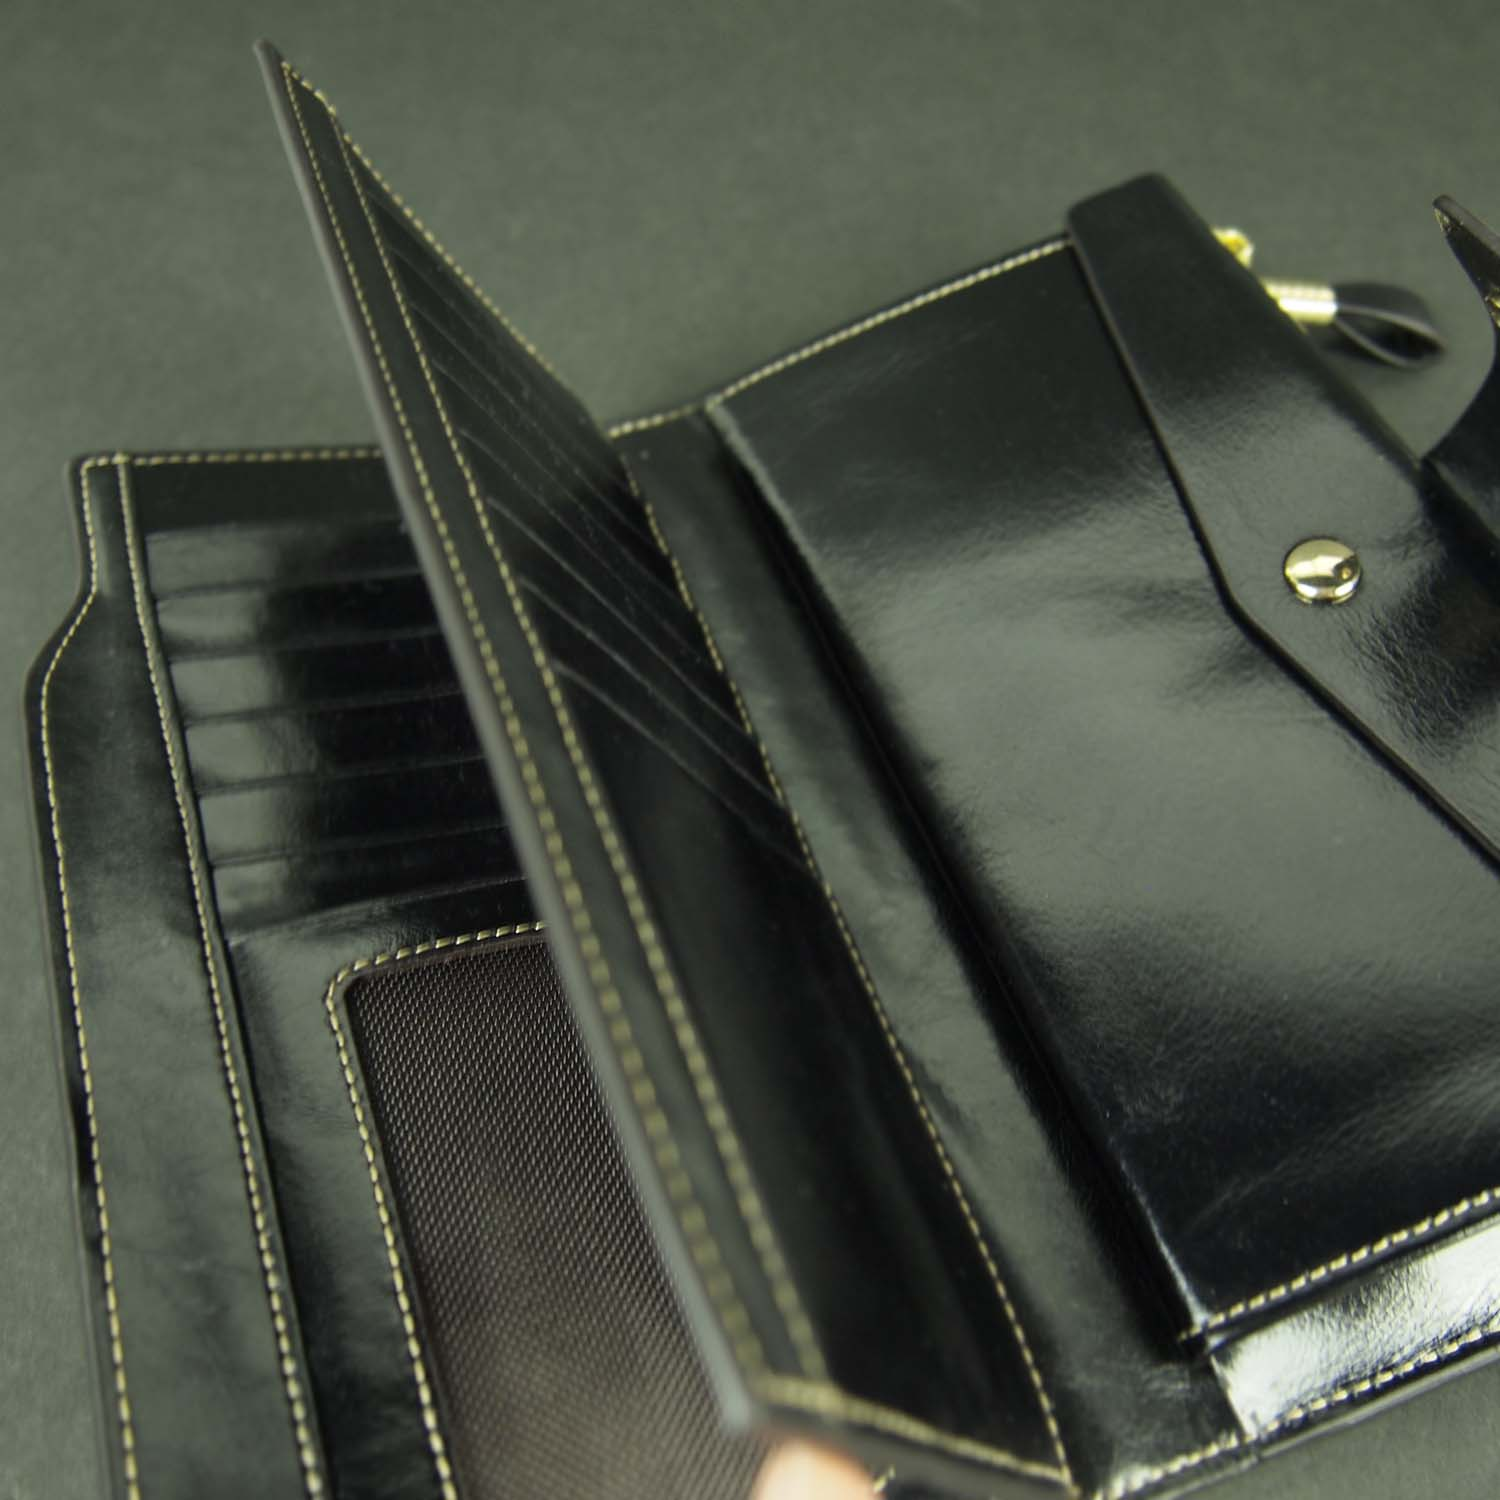 Butterfield Gussie Wallet Interiorl View